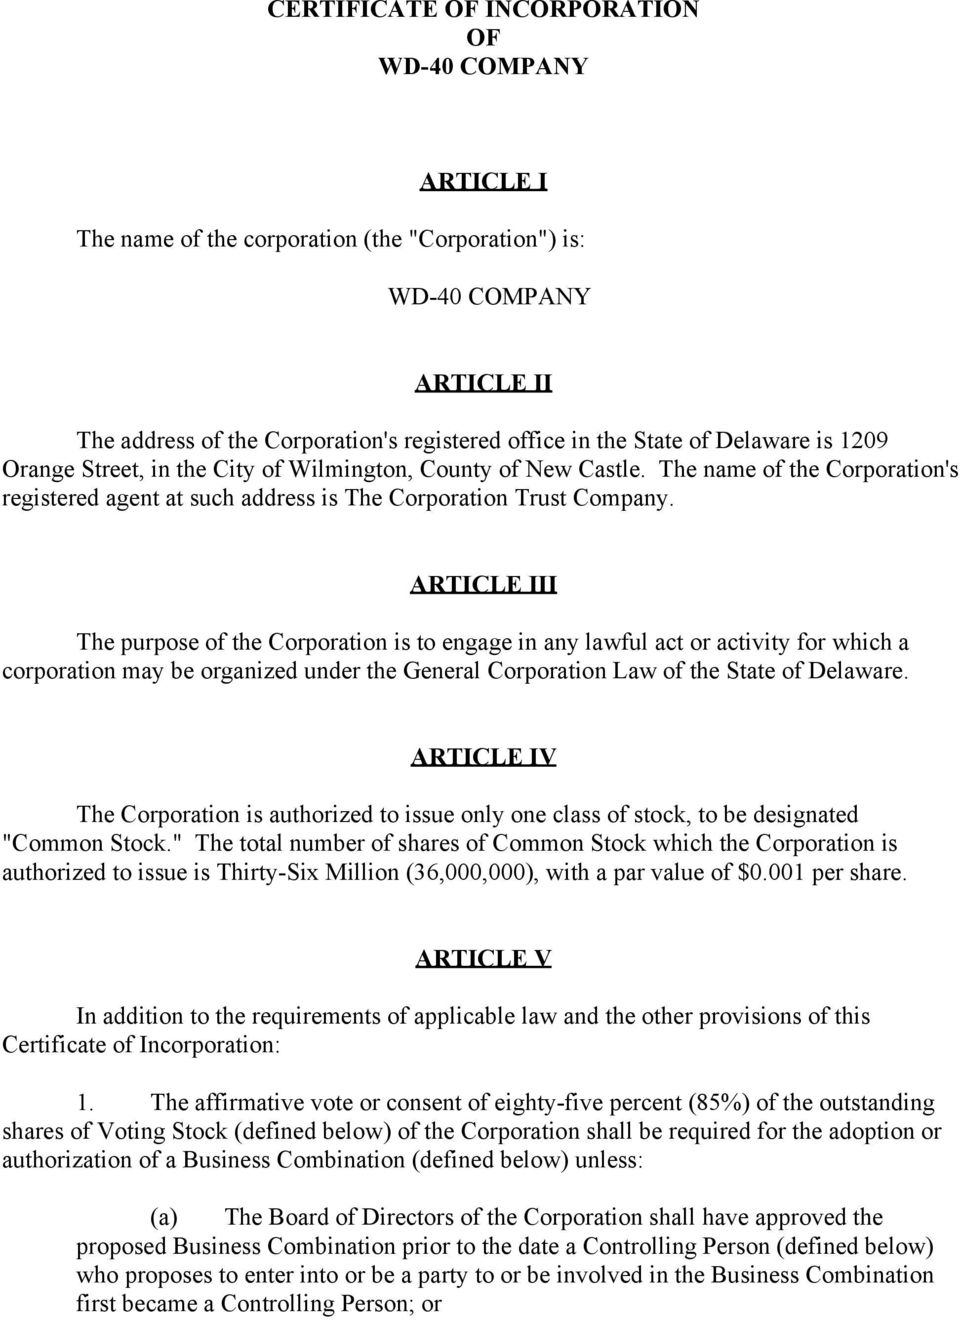 ARTICLE III The purpose of the Corporation is to engage in any lawful act or activity for which a corporation may be organized under the General Corporation Law of the State of Delaware.